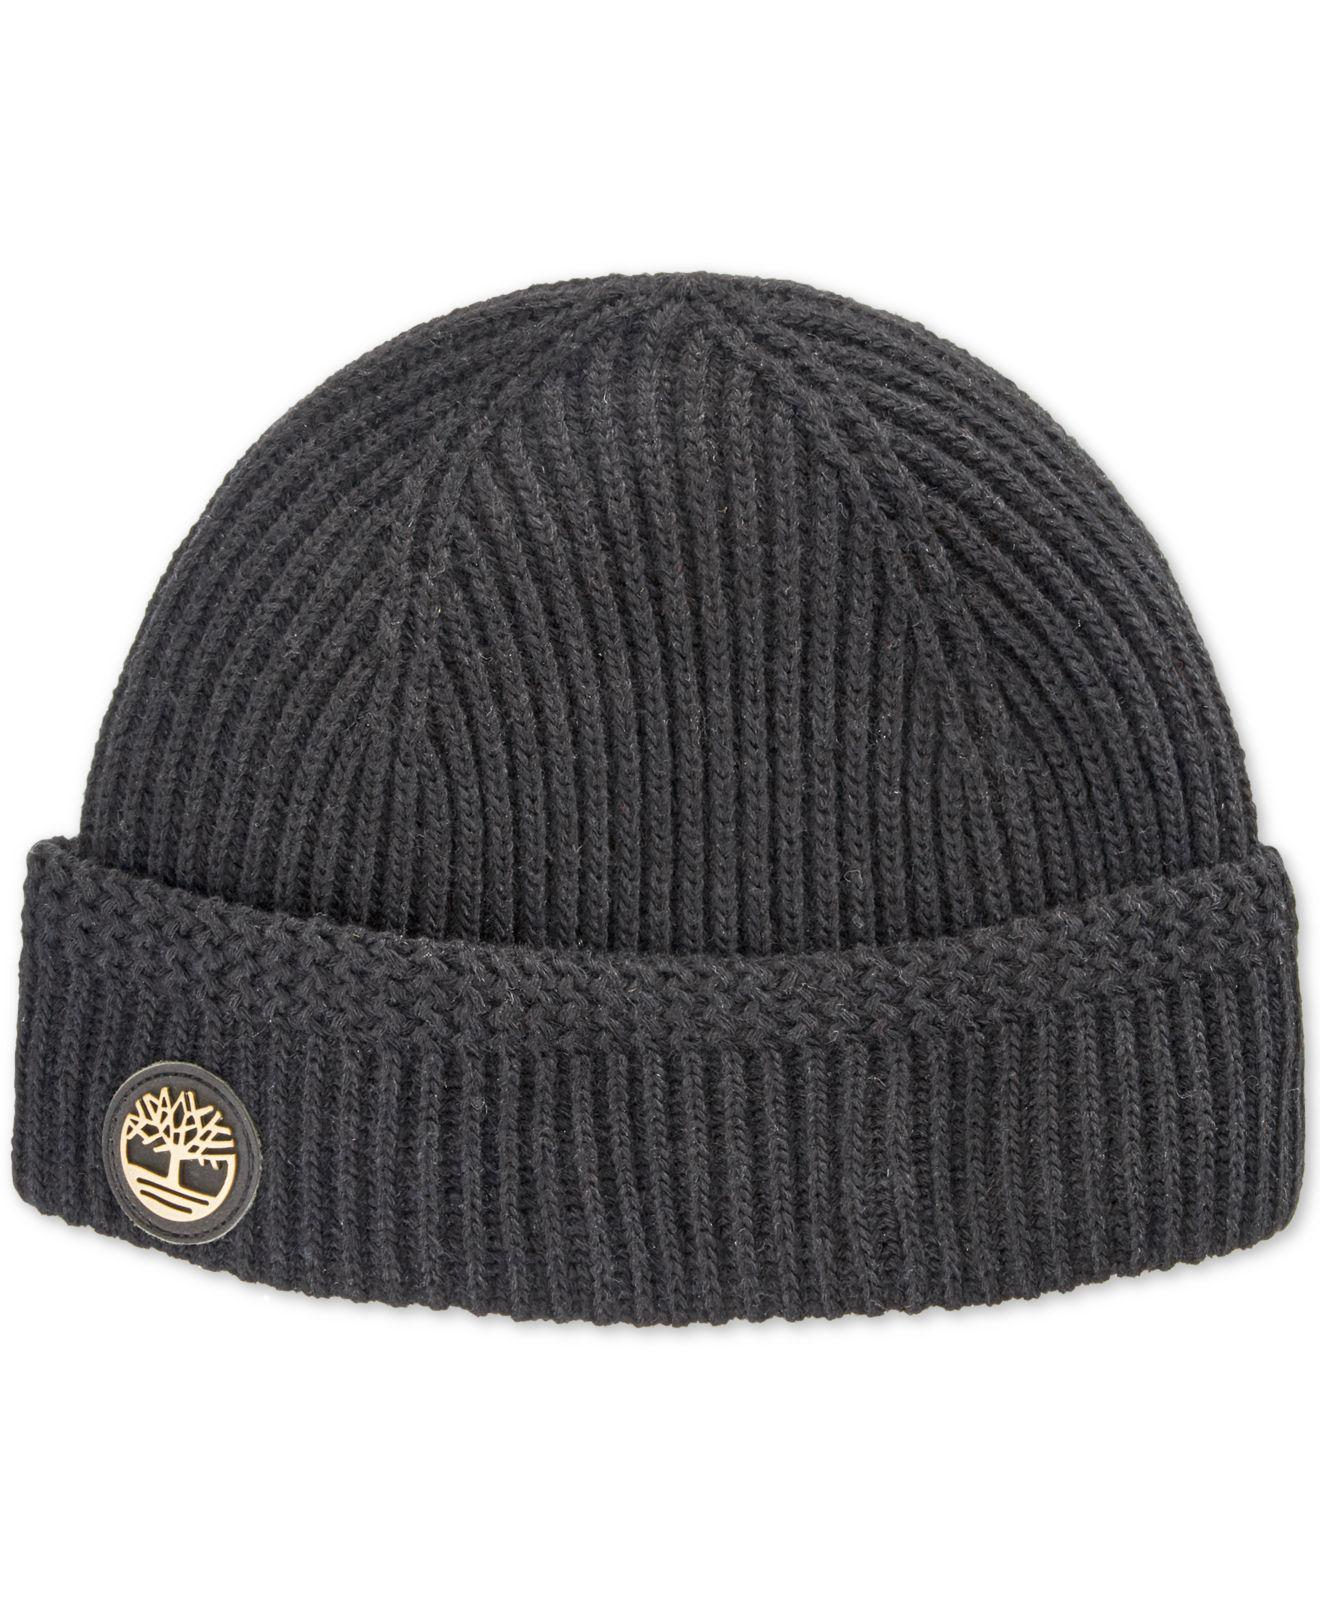 8a998ecf2e0275 Lyst - Timberland Heat Retention Ribbed Watch Cap, Created For ...